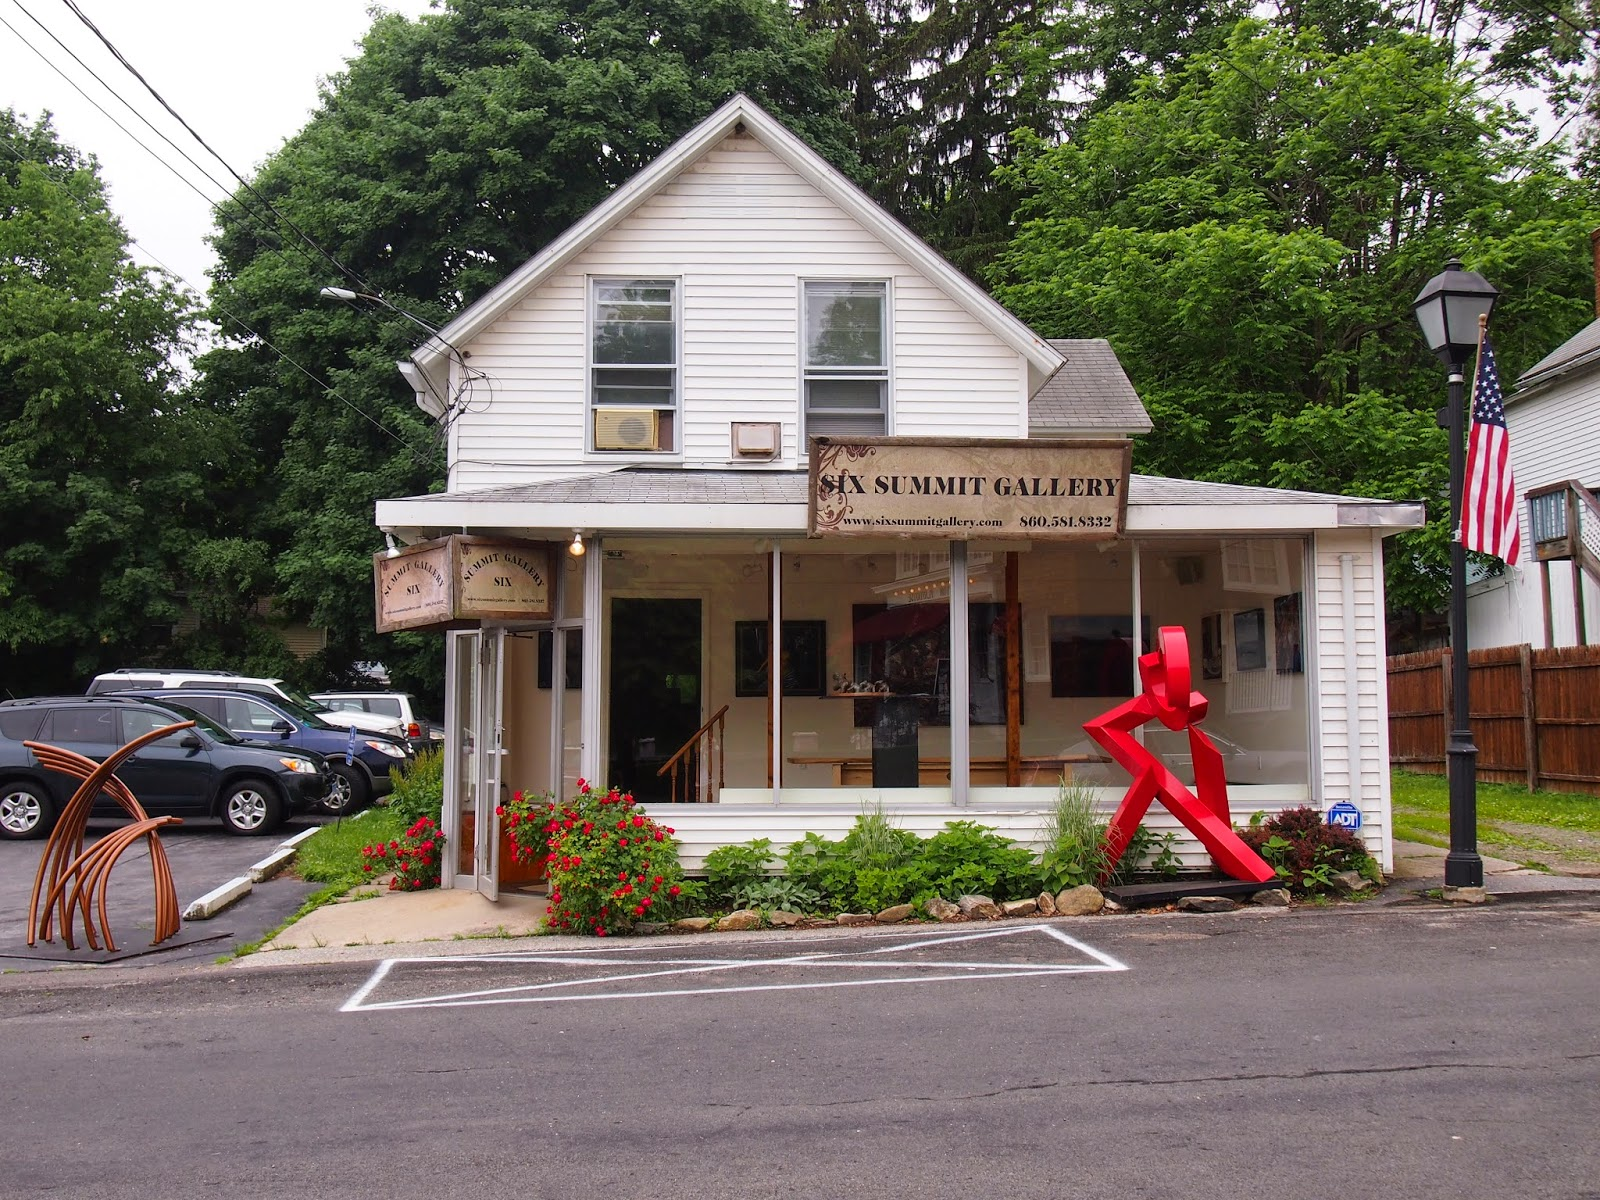 a small art gallery in Ivoryton